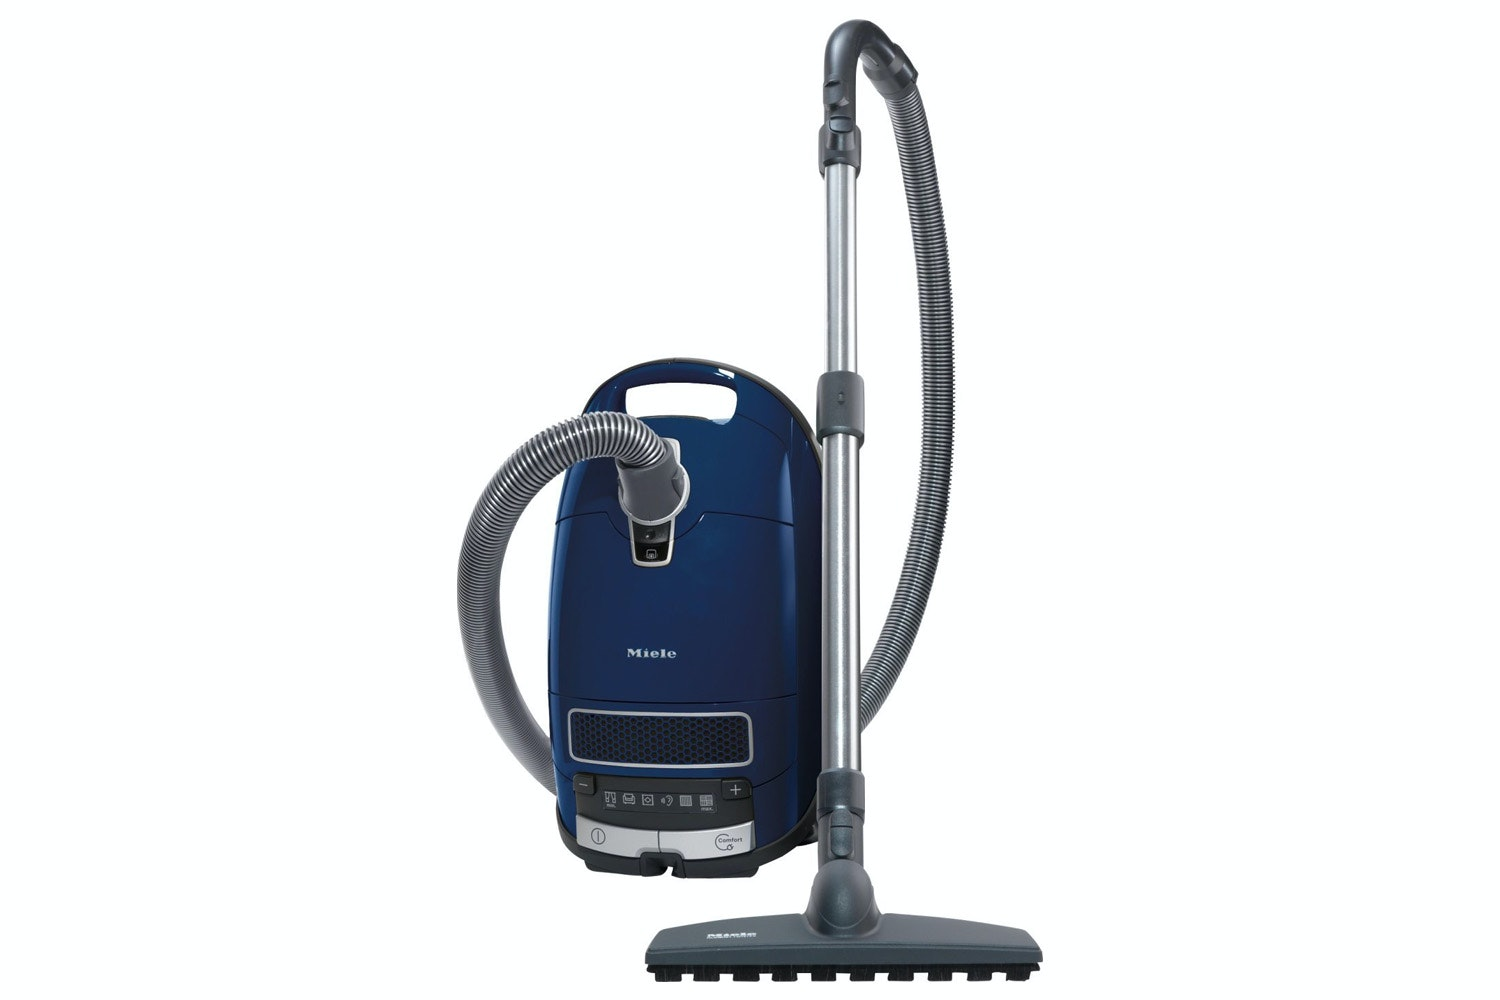 Complete C3 Parquet PowerLine - SGSF3  Cylinder vacuum cleaner   with protective parquet floorhead for first-class care of delicate hard floors.